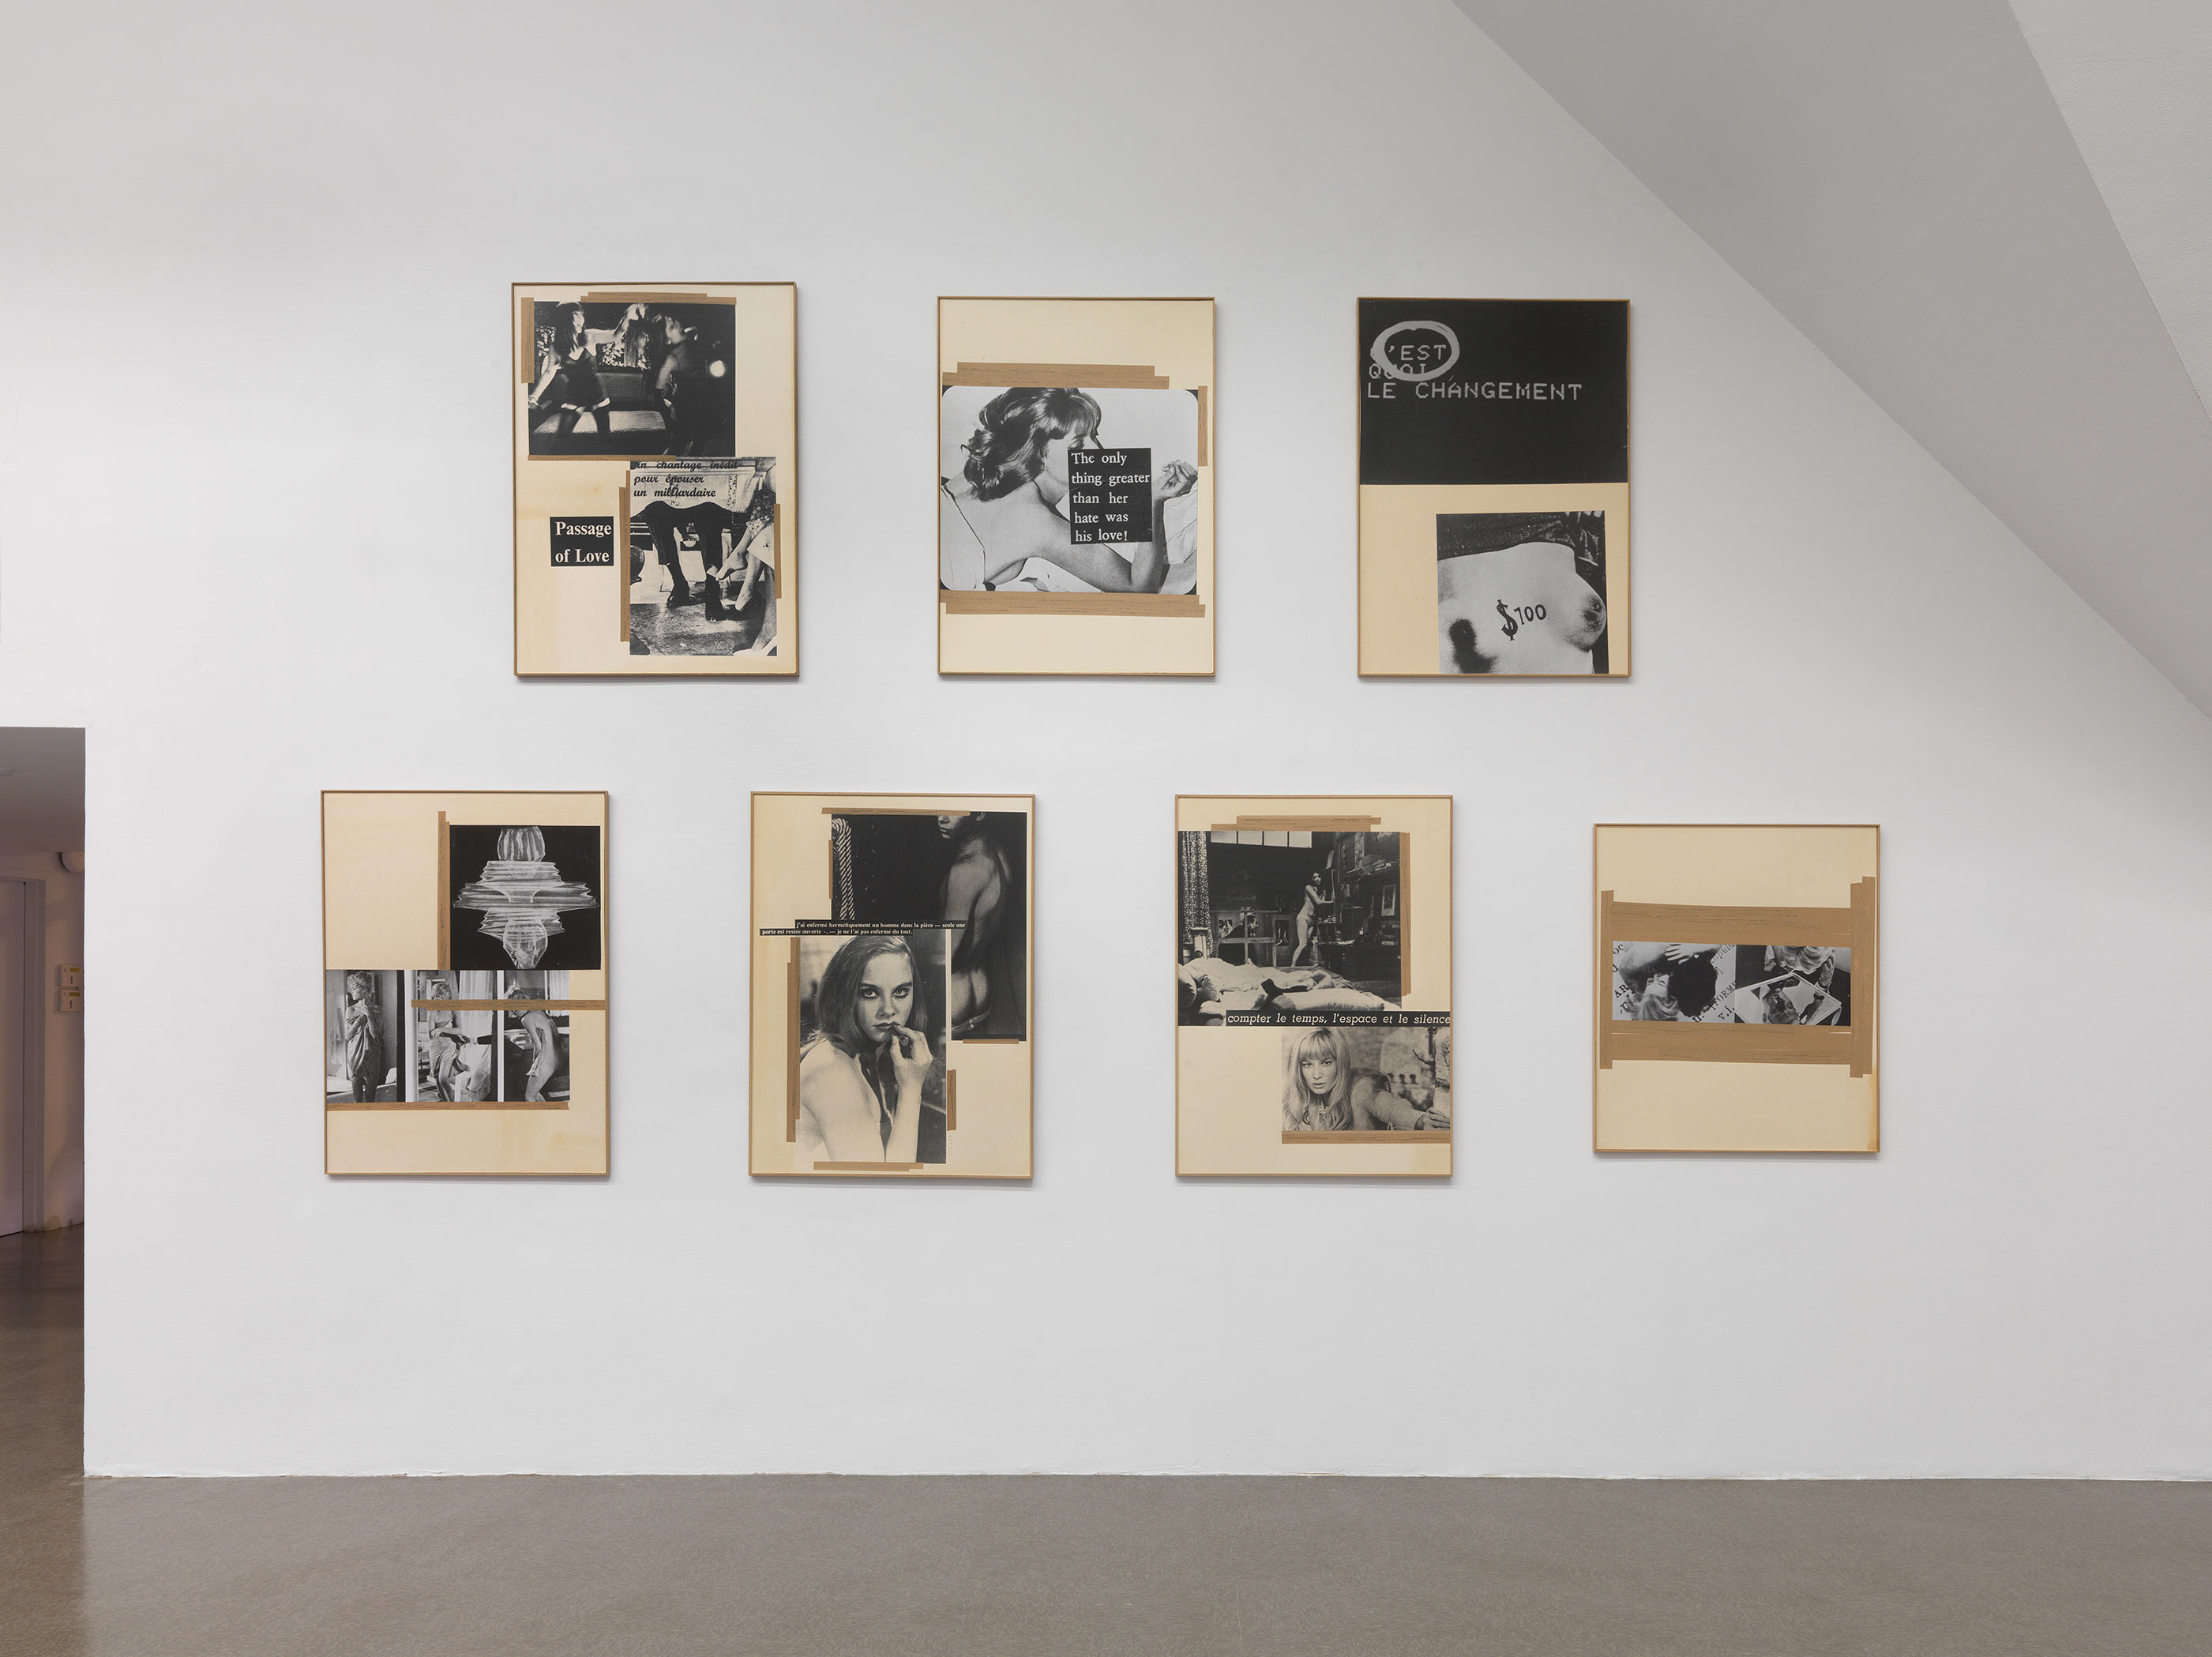 Seven collages of black-and-white photographs and text, with masking tape (or something like it) around selected images